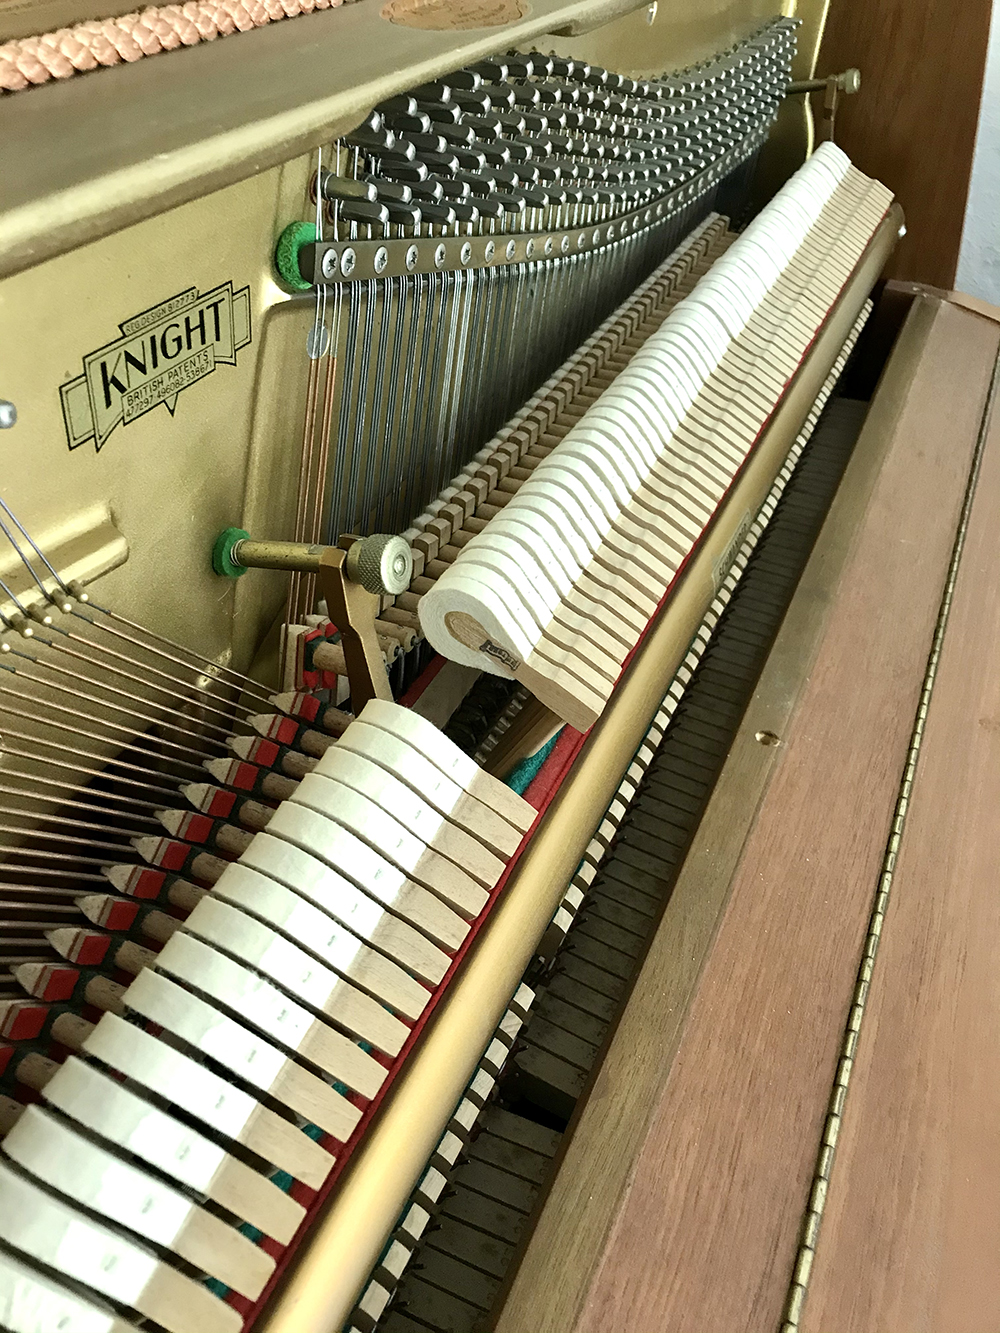 knight-k10-used-upright-Piano-Dorset-for-sale-4.jpg